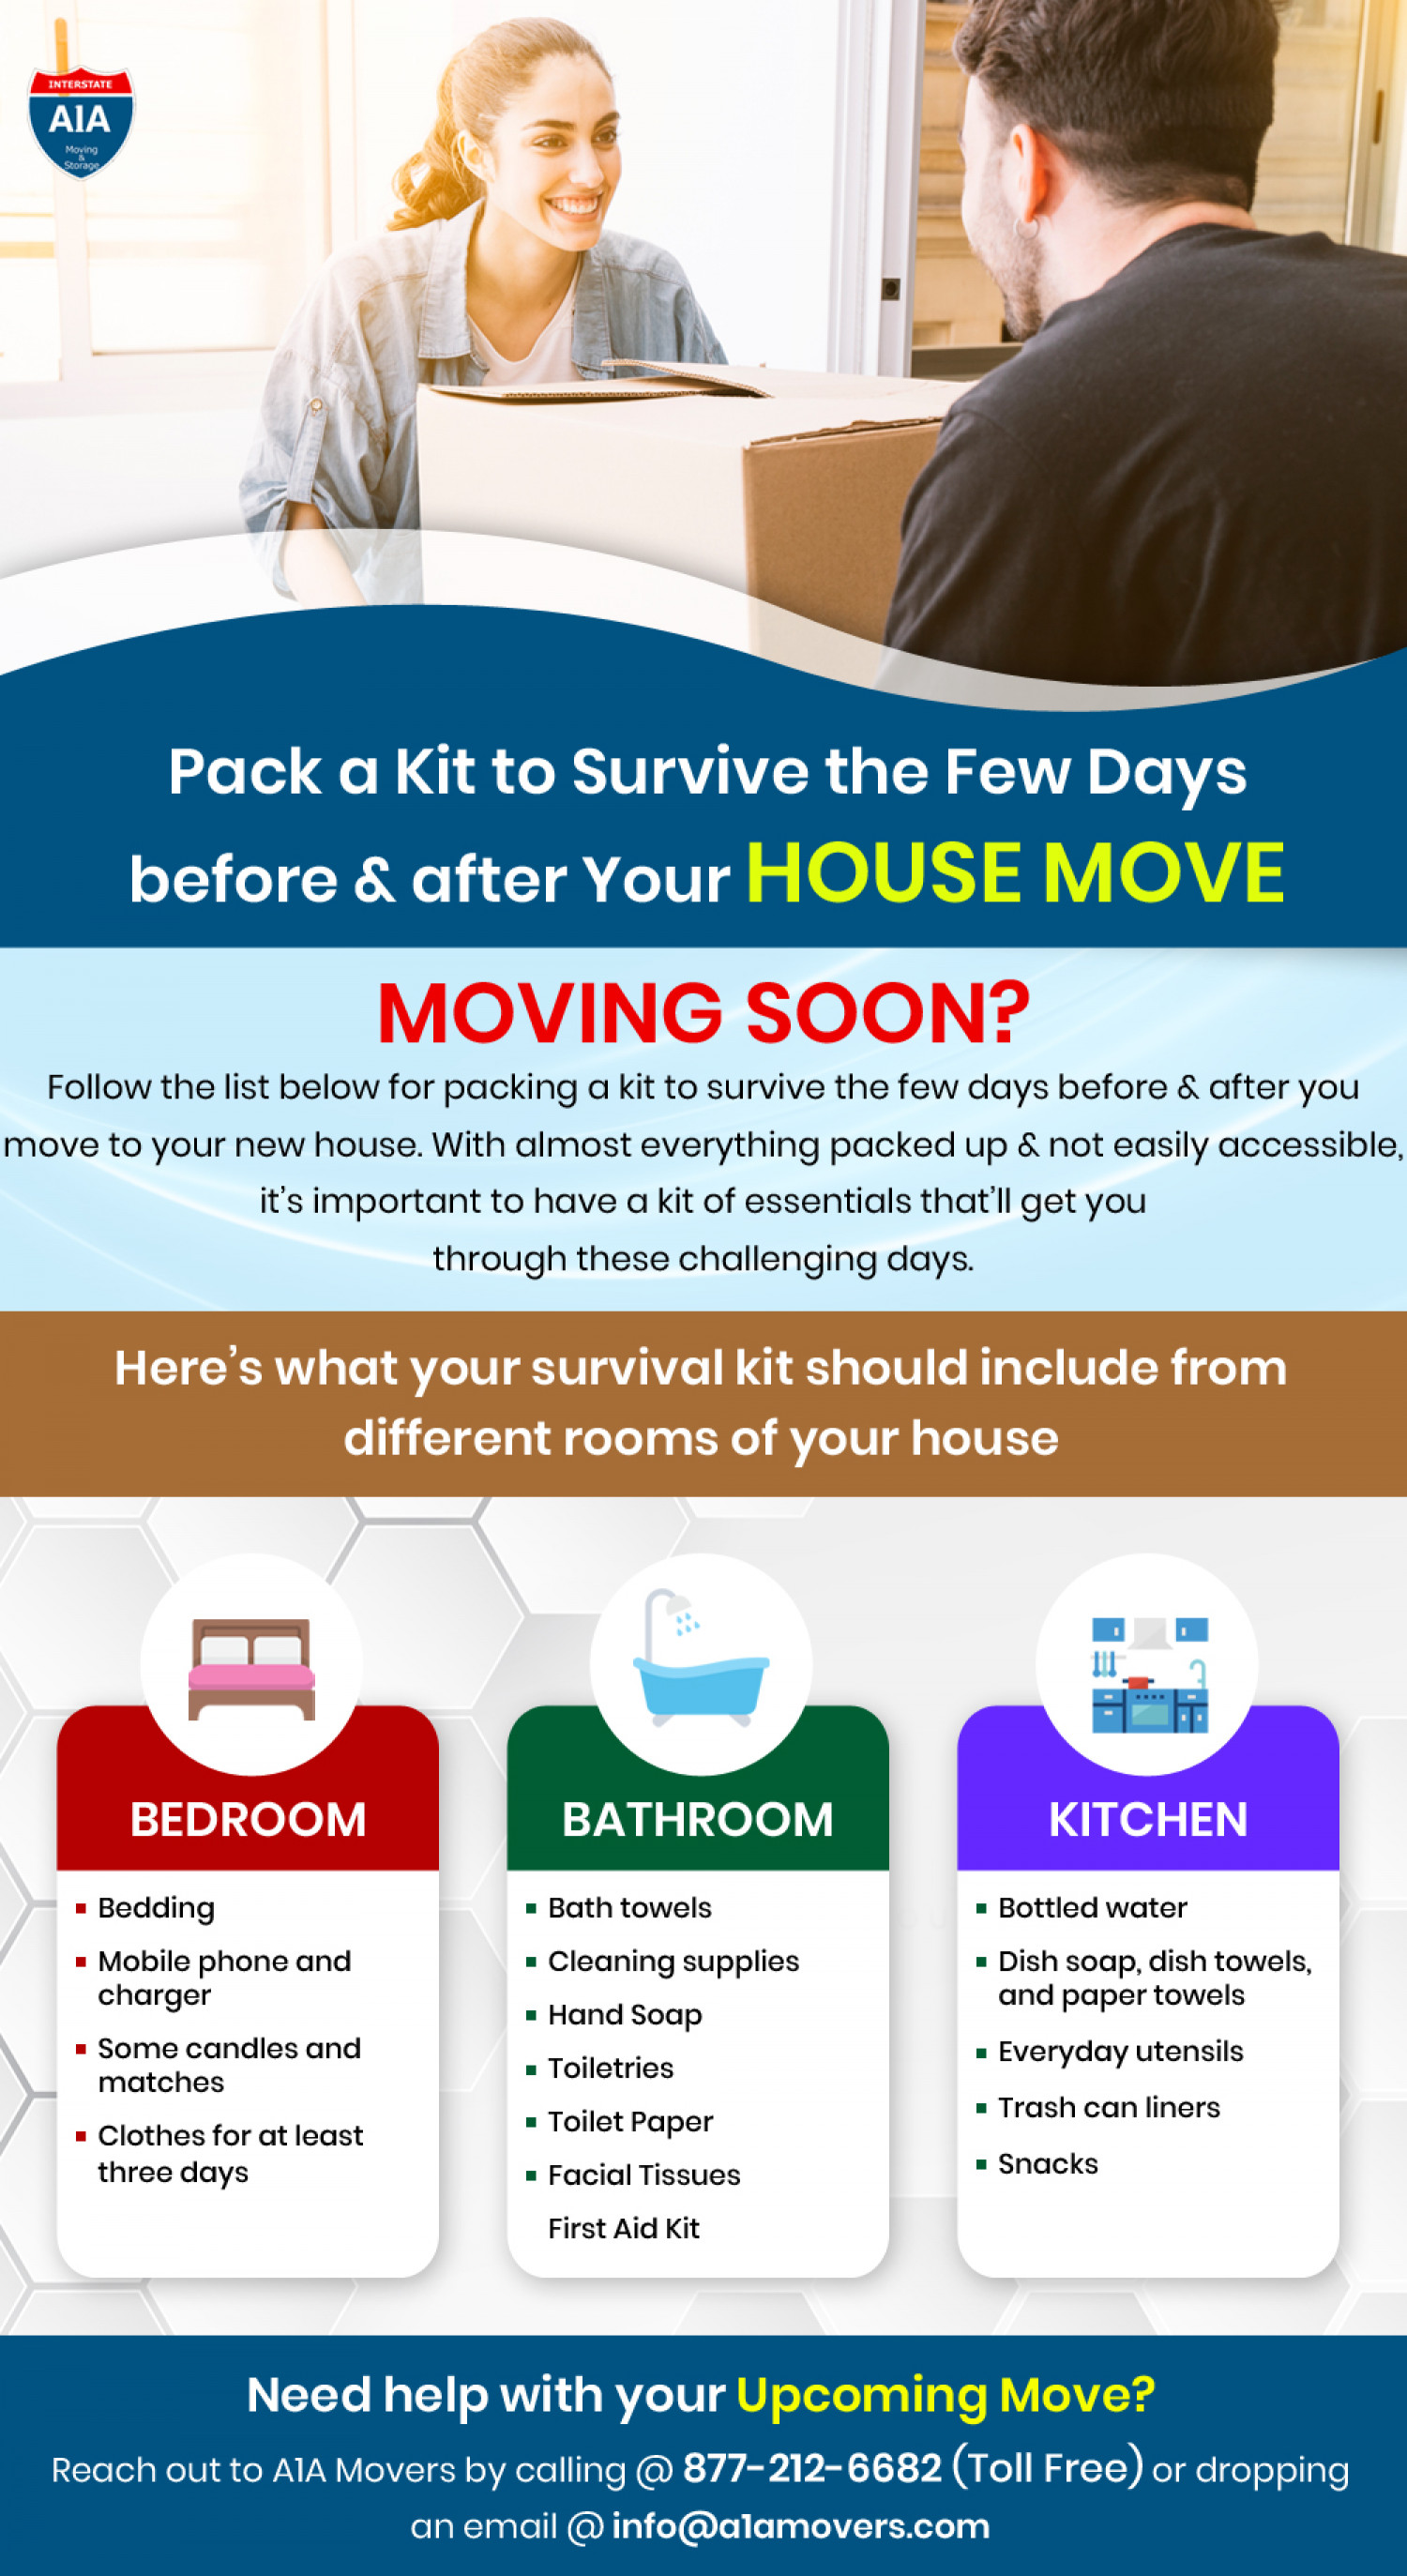 Pack a Kit to Survive the Few Days Before & After Your House Move Infographic